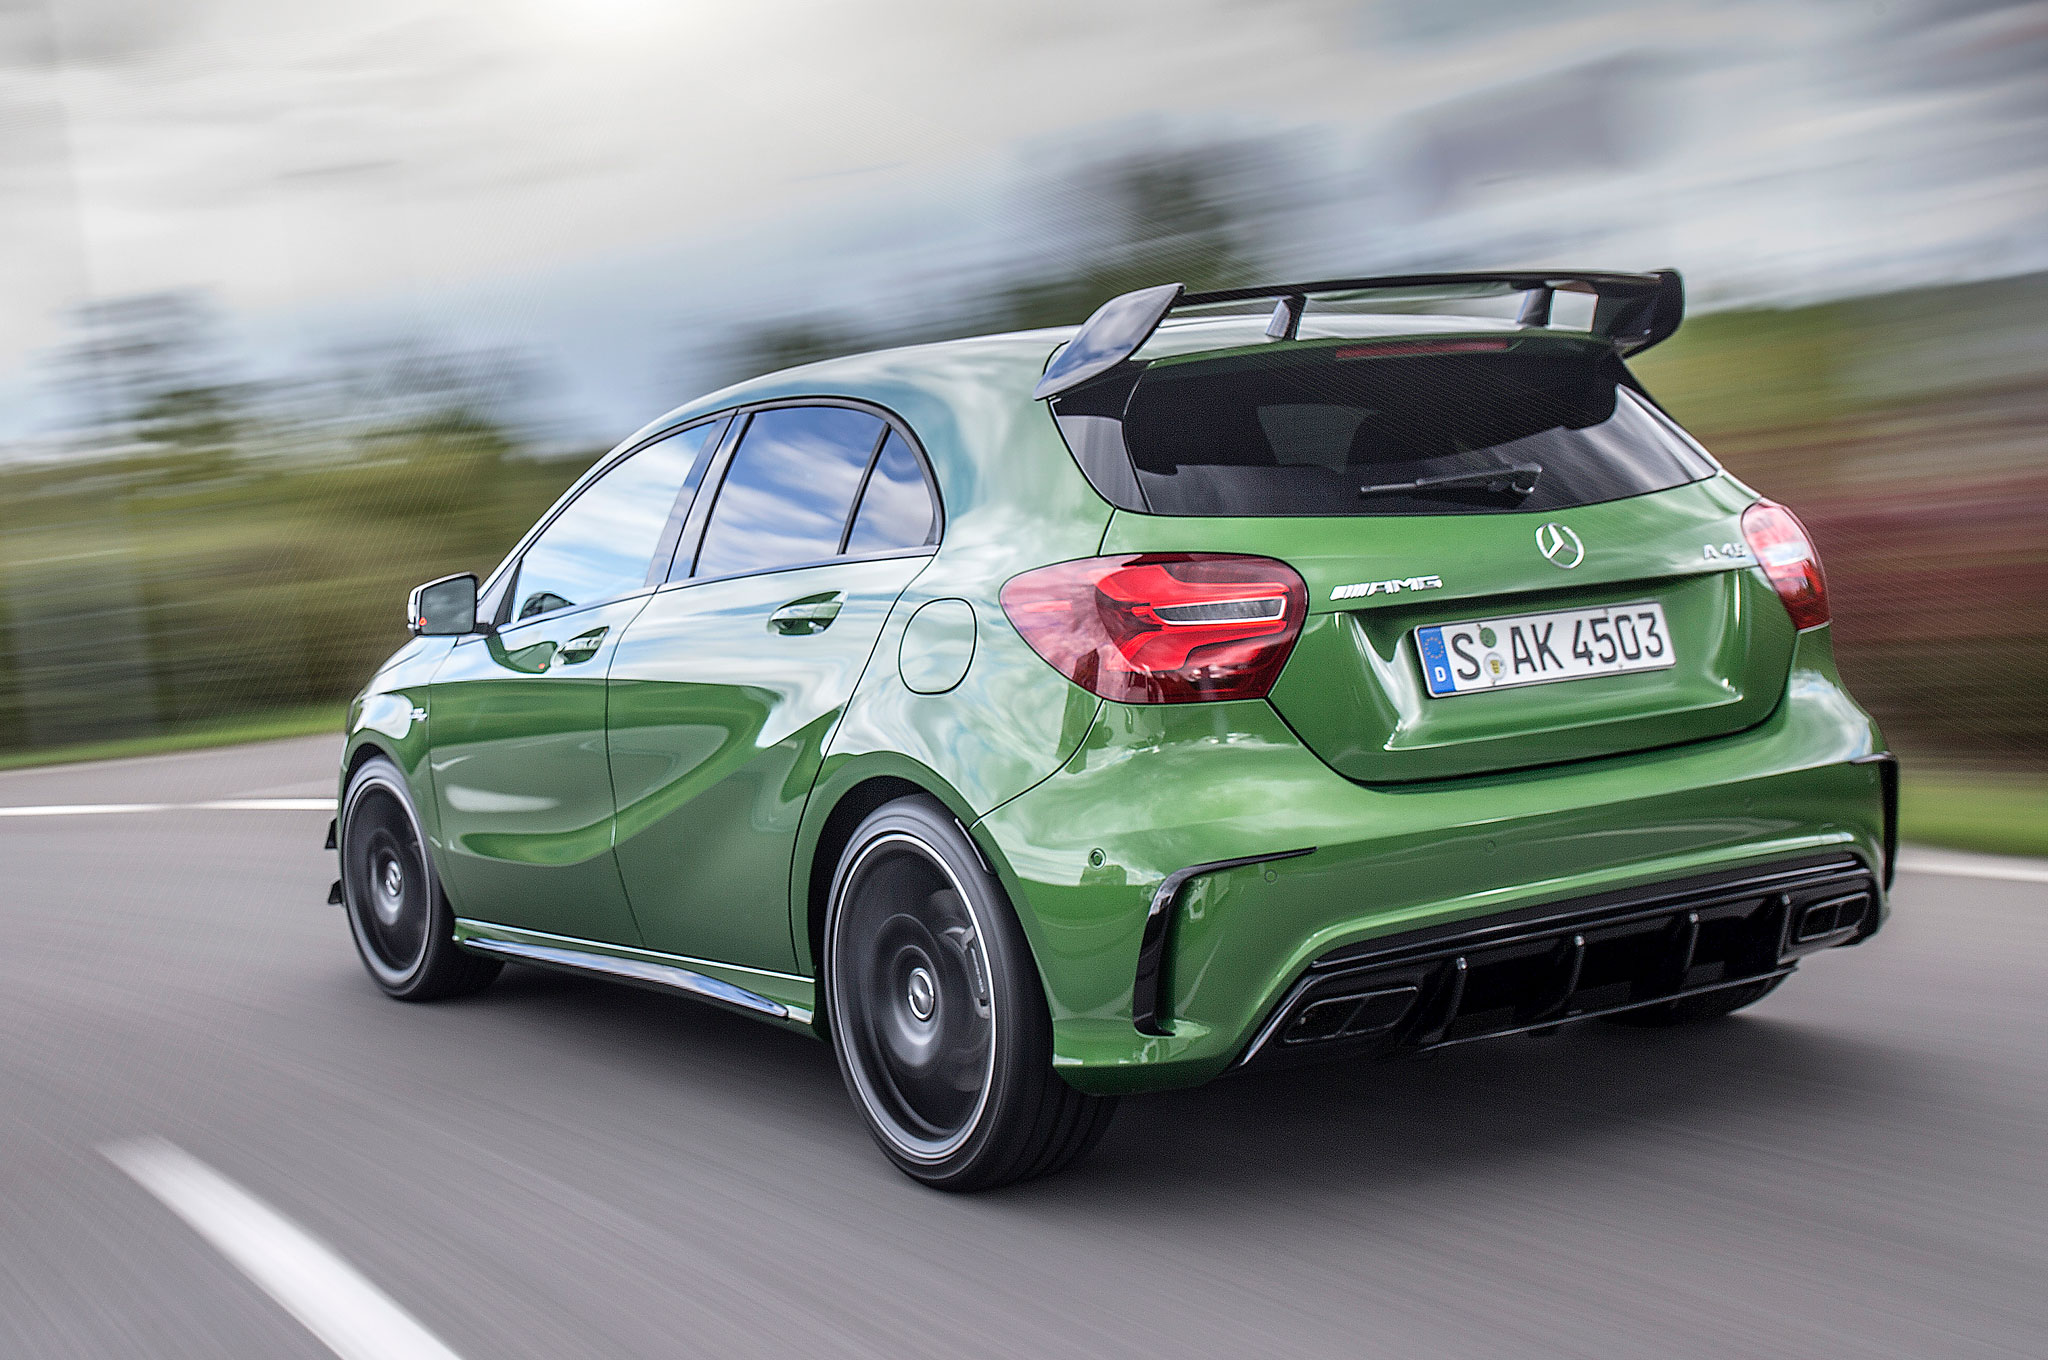 https://st.automobilemag.com/uploads/sites/11/2015/09/2016-Mercedes-AMG-A45-4Matic-rear-three-quarter-in-motion-02.jpg